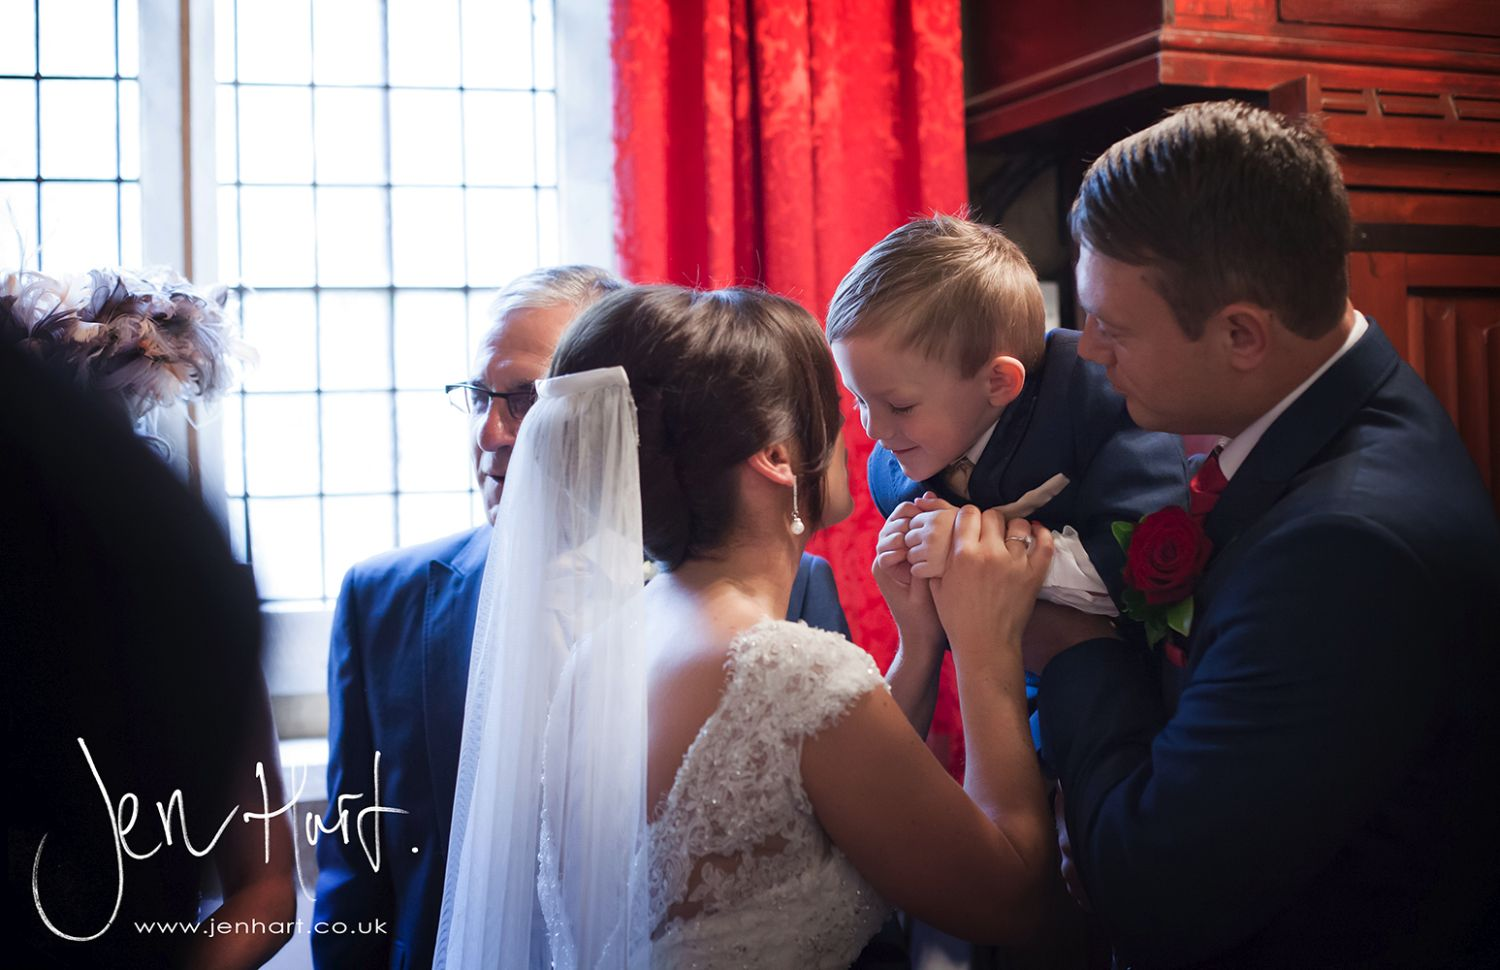 Photograph_Grinkle_Park_Wedding_Andrea&Rob_28JUN14_068_12